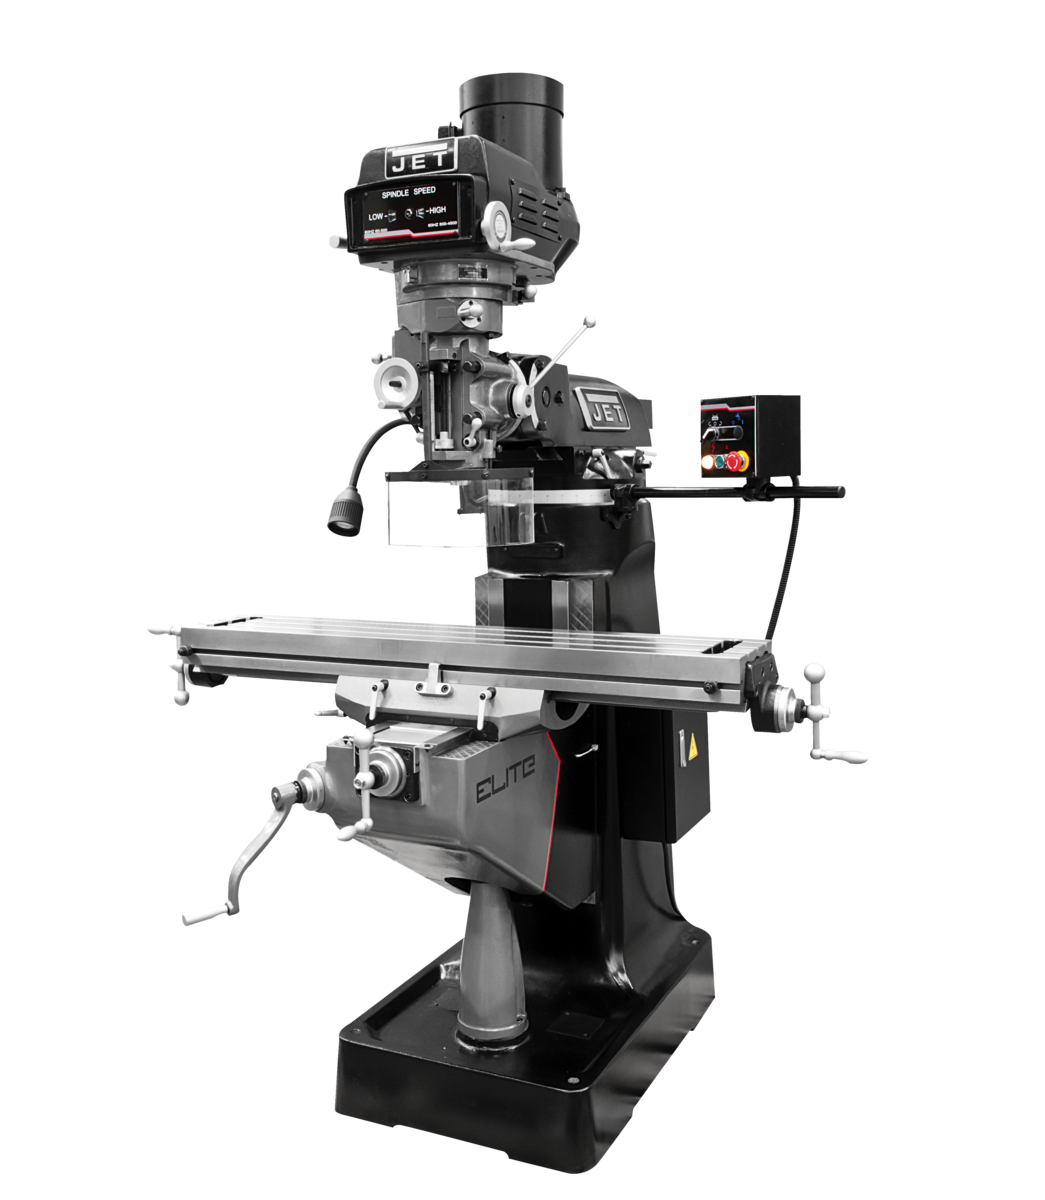 ETM-949 Mill with 3-Axis ACU-RITE 203 (Quill) DRO and X, Y, Z-Axis JET Powerfeeds and USA Made Air Draw Bar